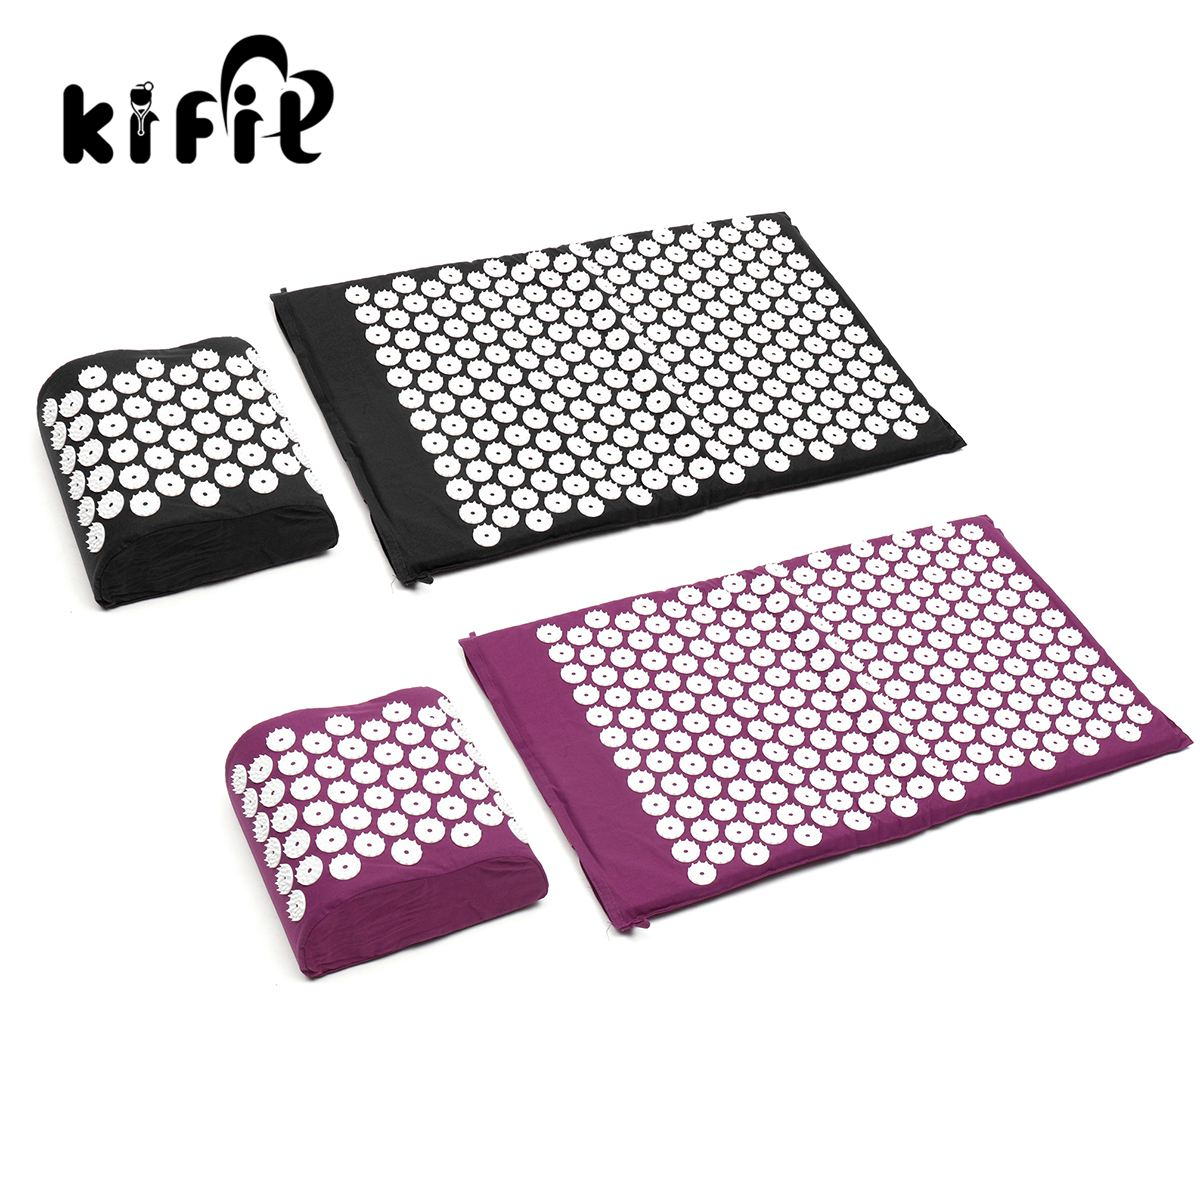 KIFIT Acupressure Massage Pillow Mat Yoga Bed Pilates Nail Needle Pressure Shakti Neck Health Beauty Care Tool 100pcs box zhongyan taihe acupuncture needle disposable needle beauty massage needle with tube